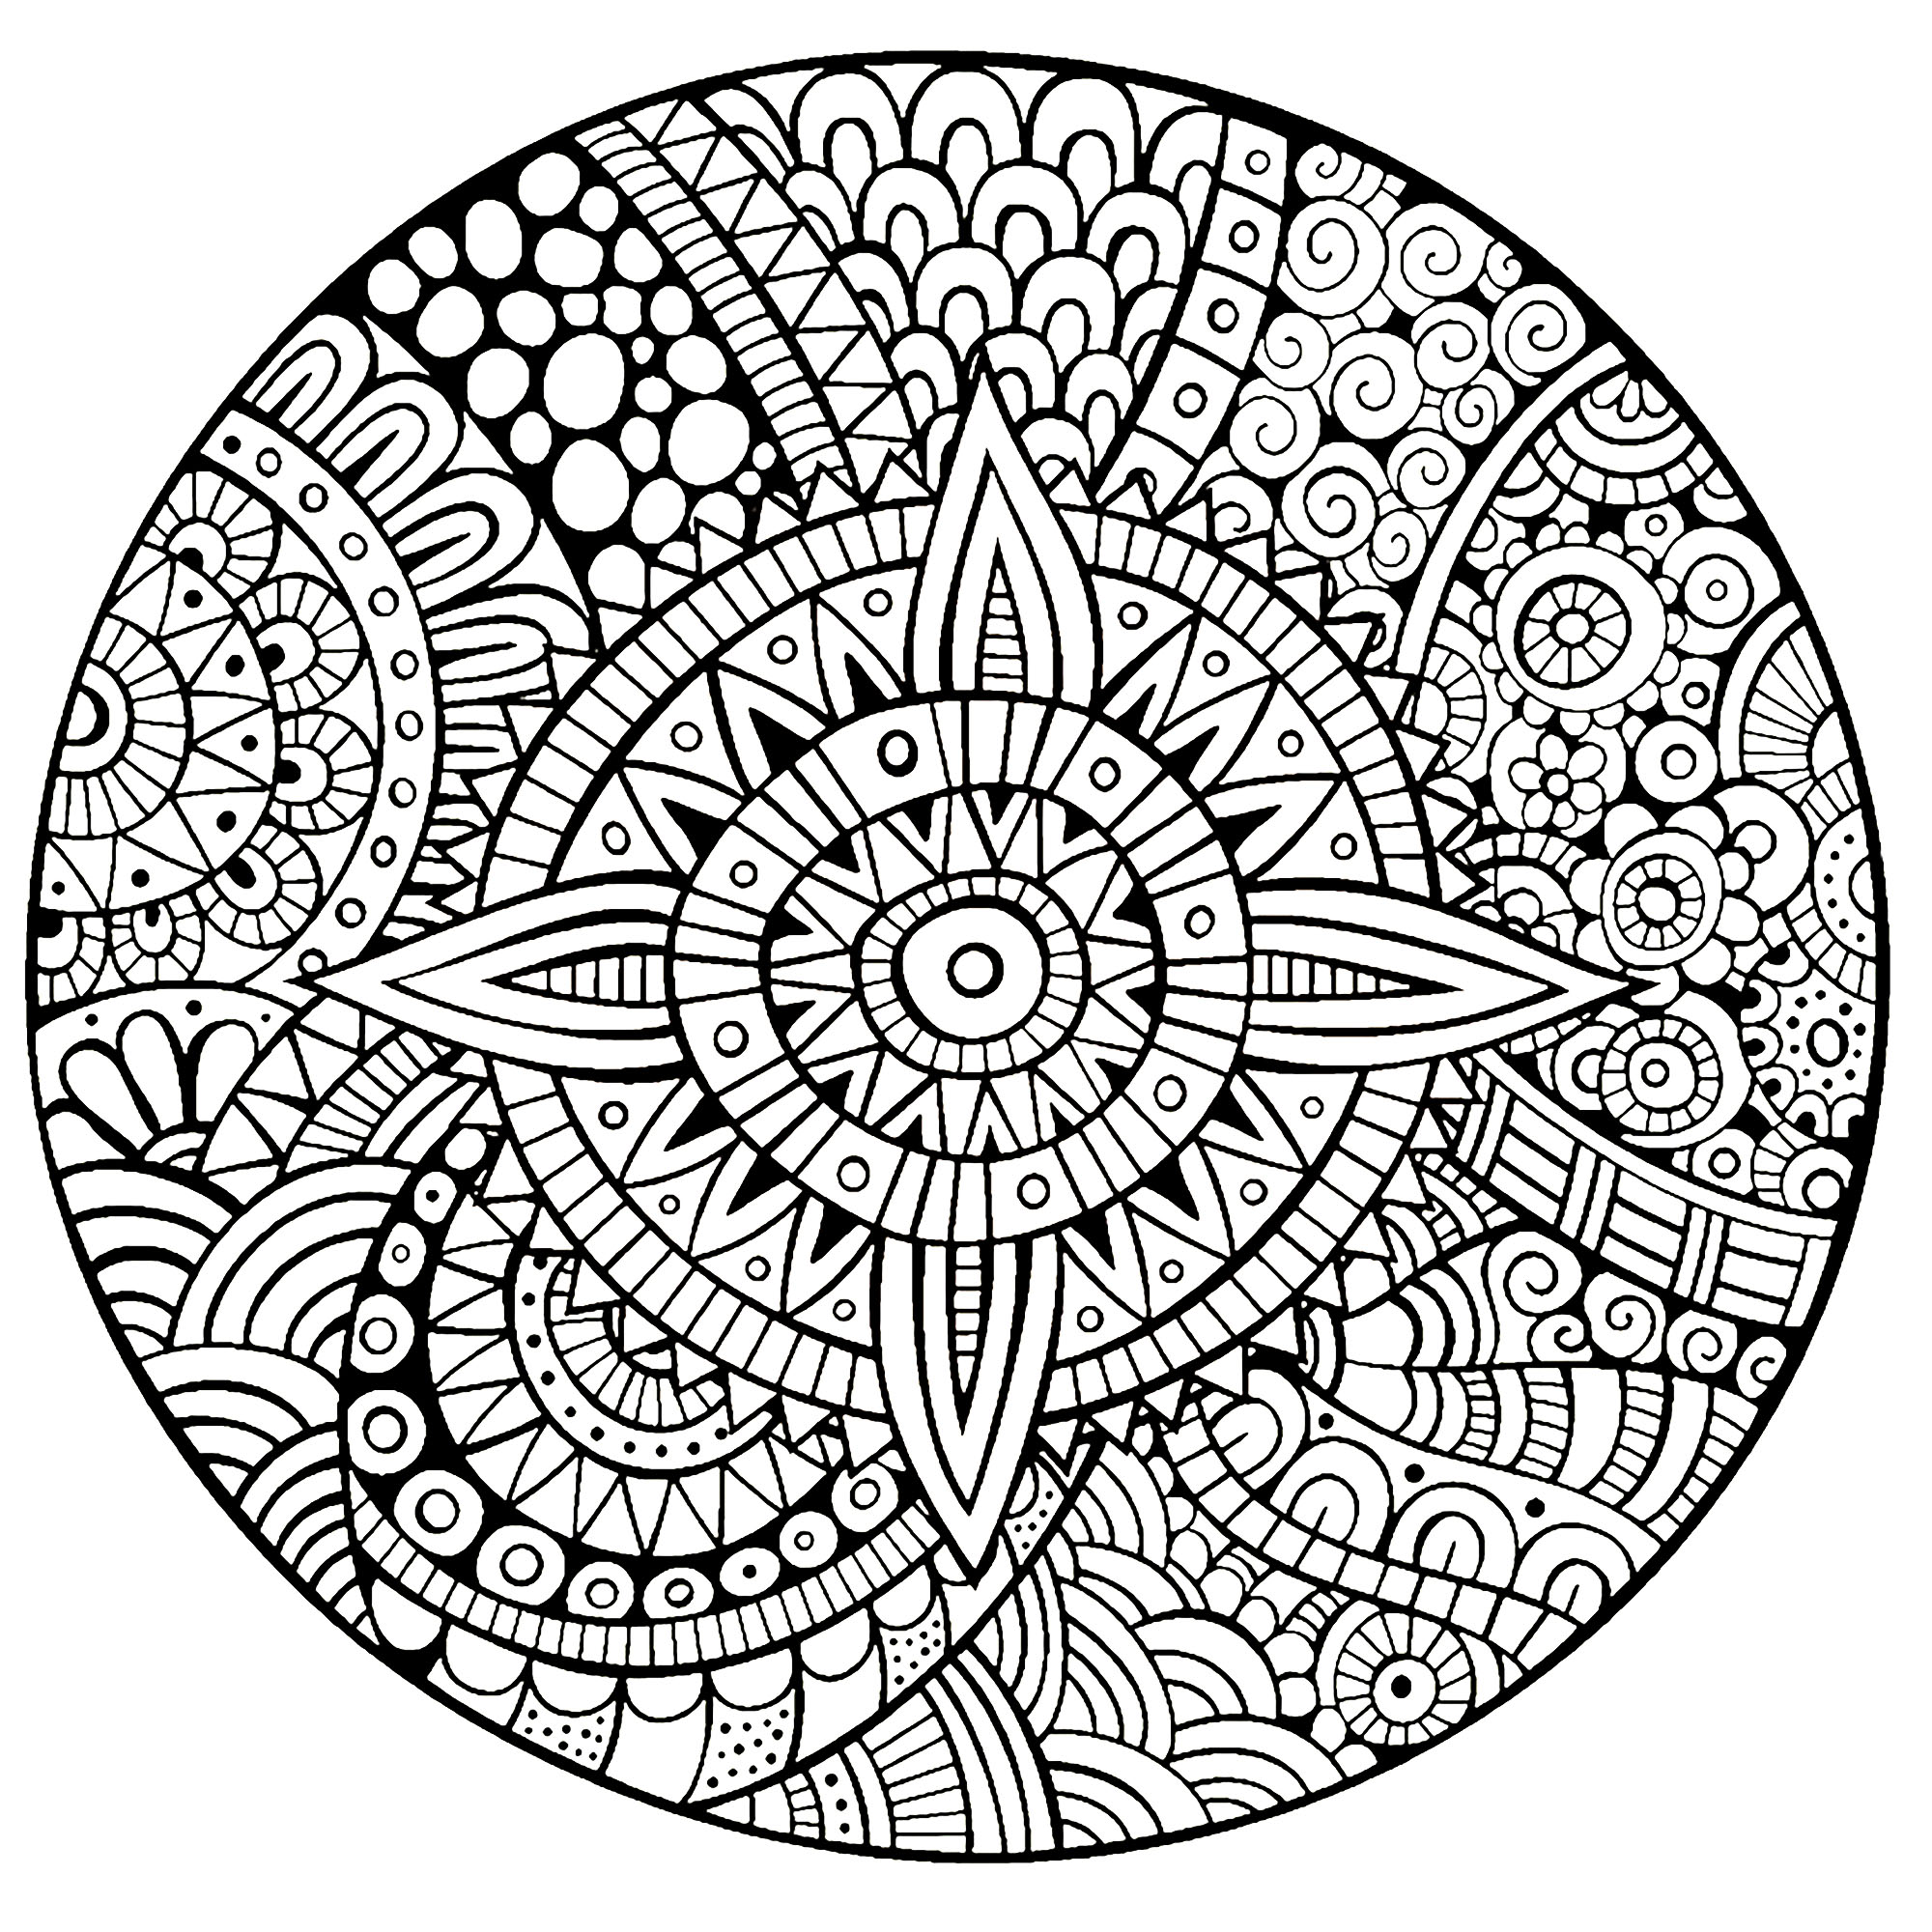 Coloring page mandala star thick lines